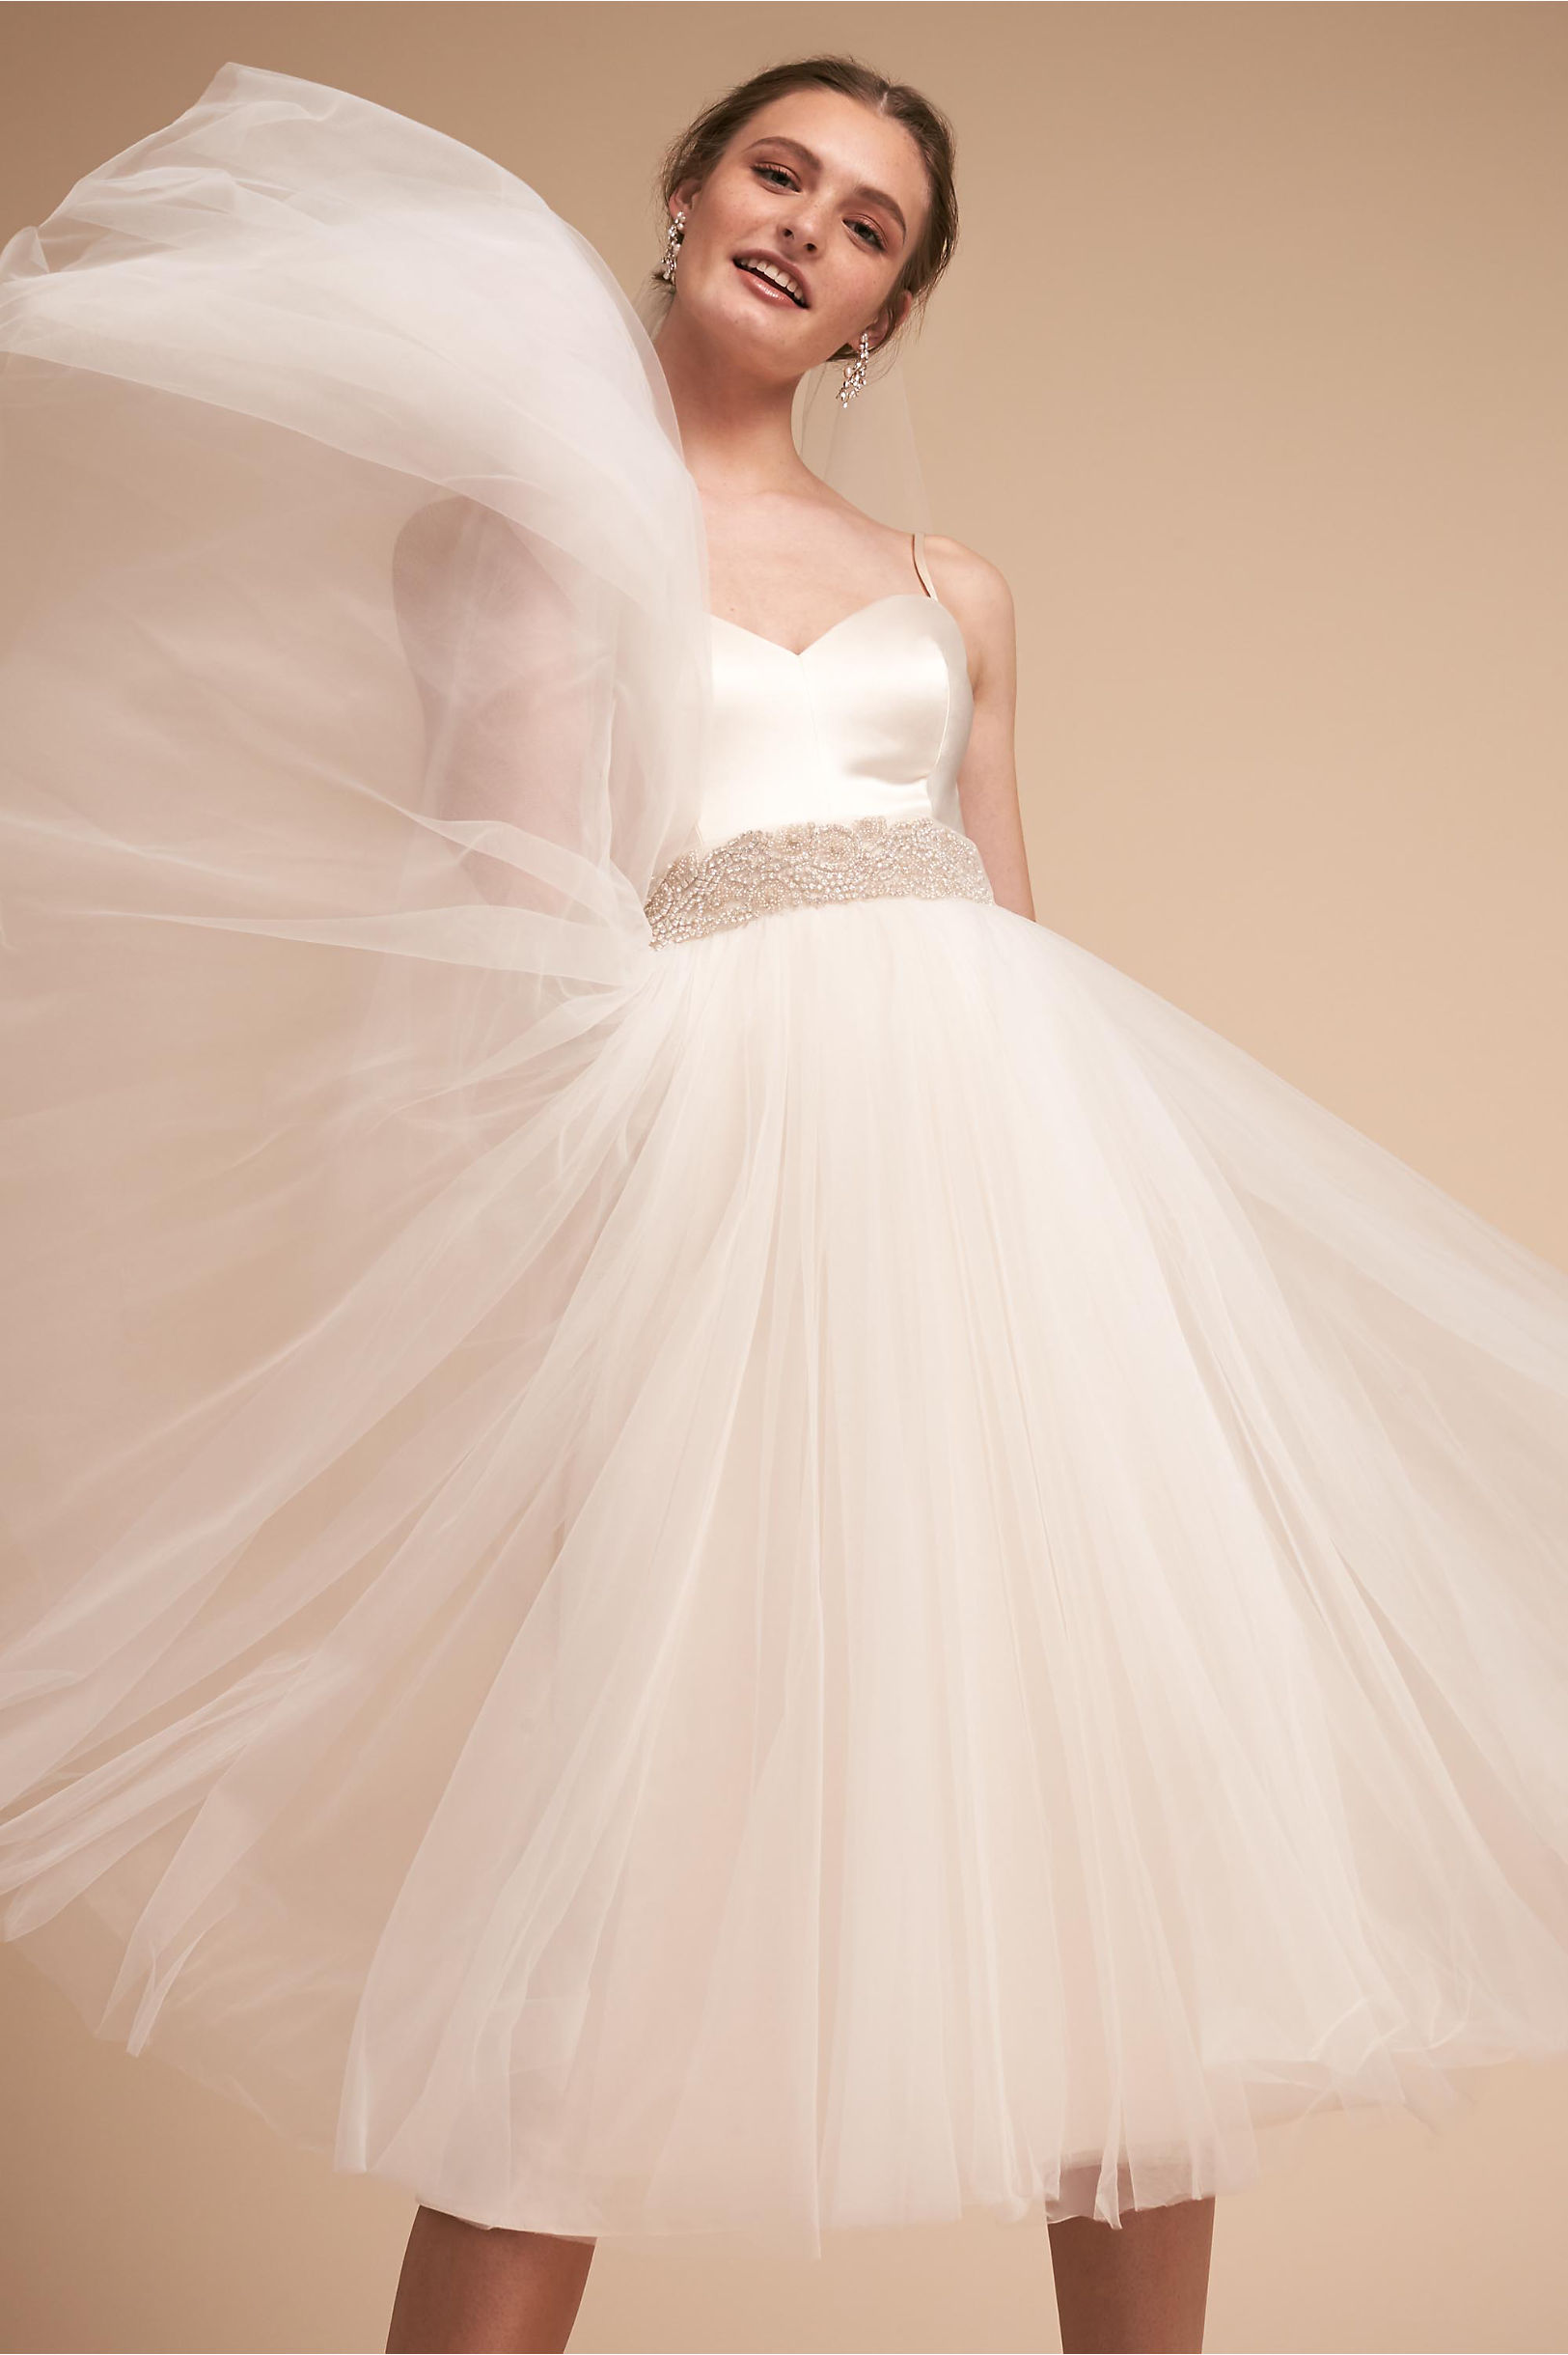 Vintage Inspired Wedding Dress | Vintage Style Wedding Dresses Camilla Gown $690.00 AT vintagedancer.com